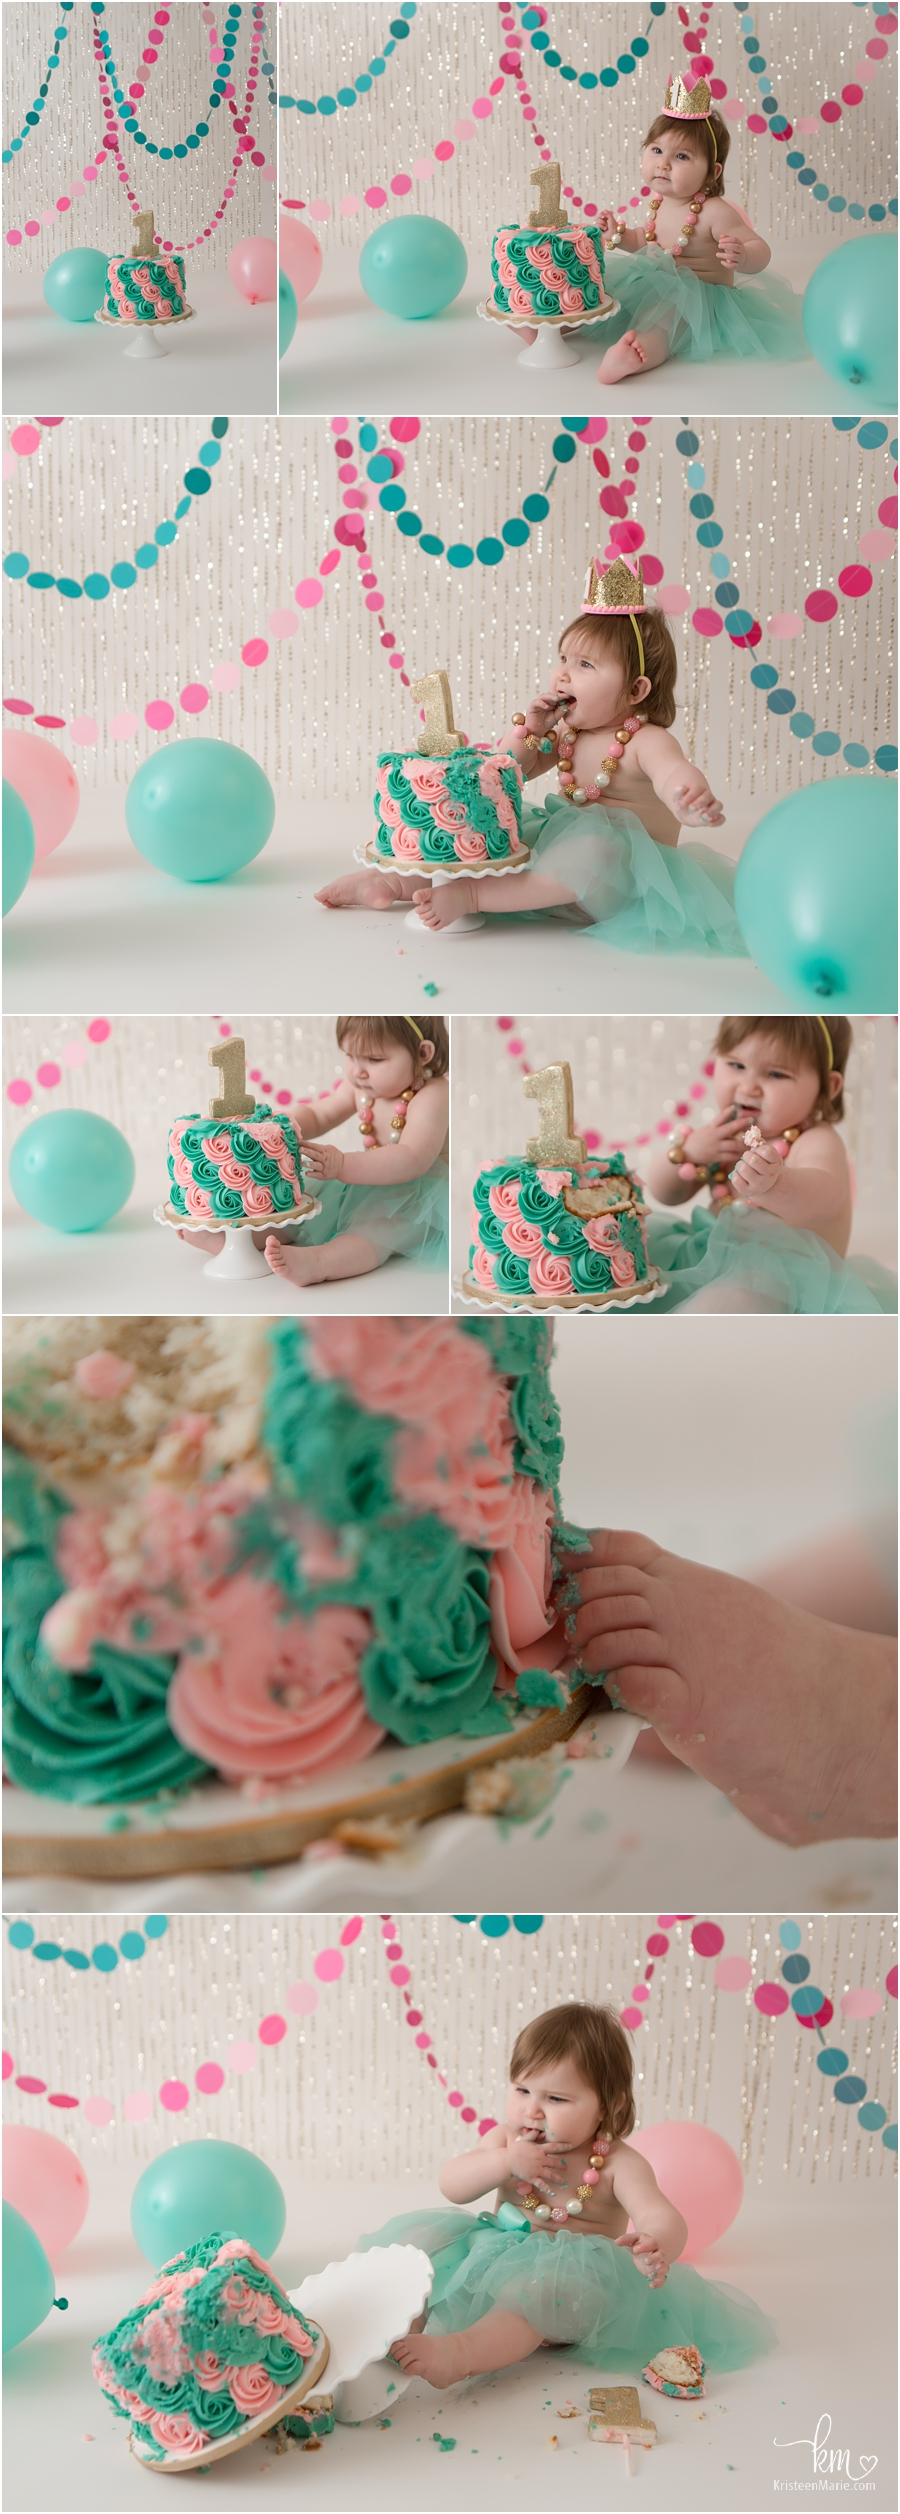 pink and teal 1st birthday cake smash session - photography by KristeenMarie